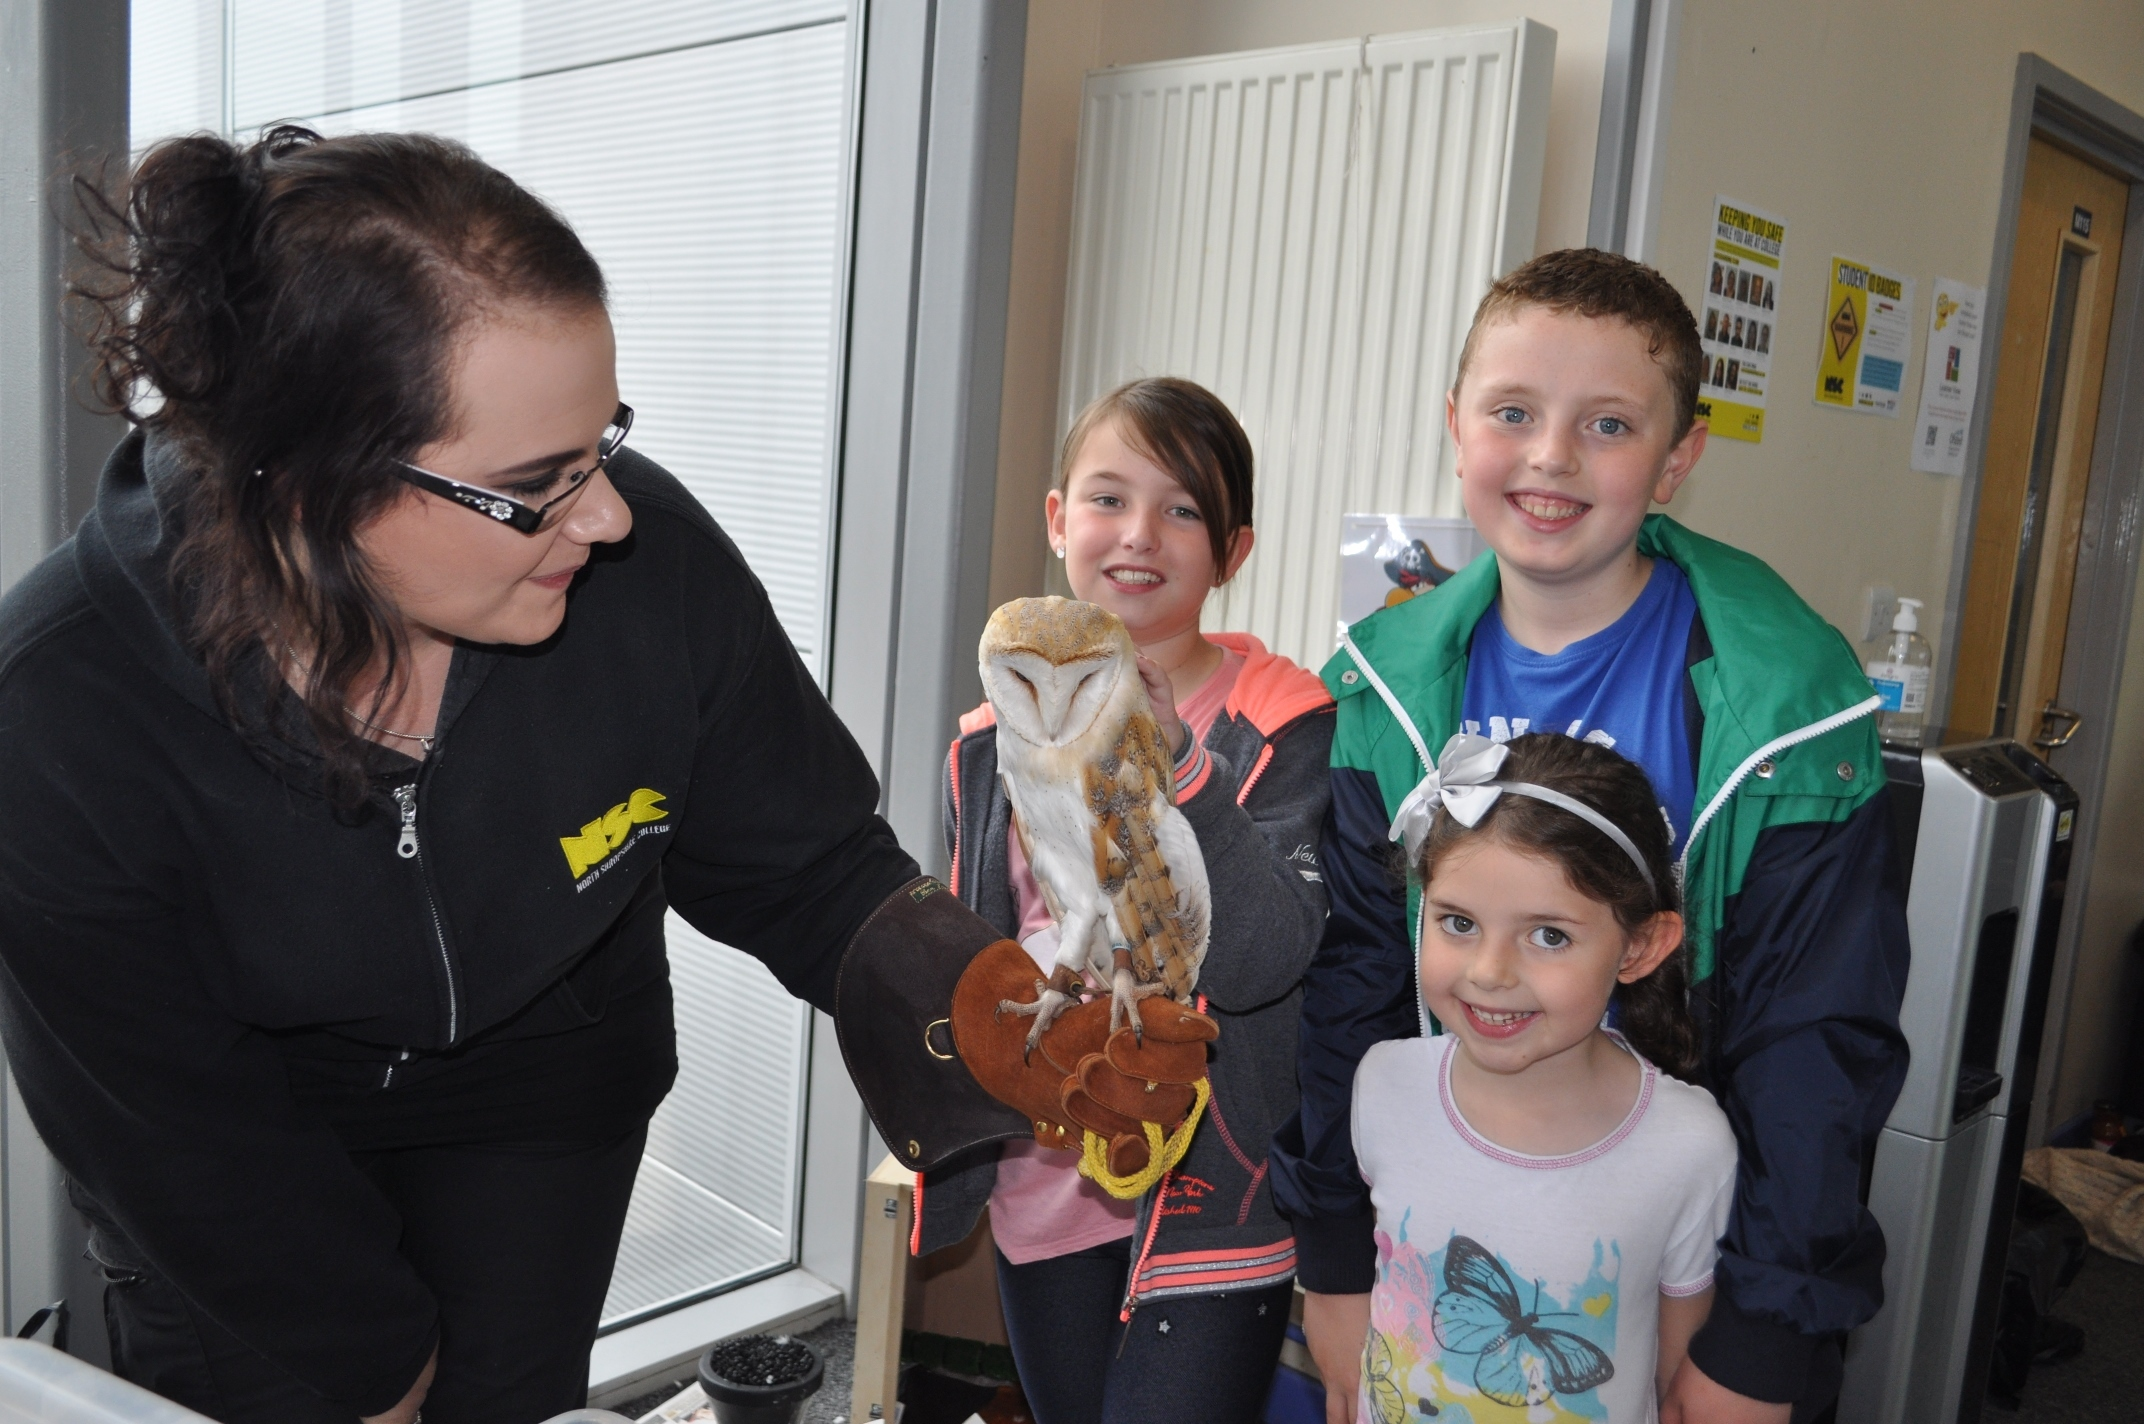 Bex Walker NSC Tutor with Luna the Owl and Children L-R Leila Shearer, Luca Edwards & Gabriella Edwards at last year's Family Fun Day